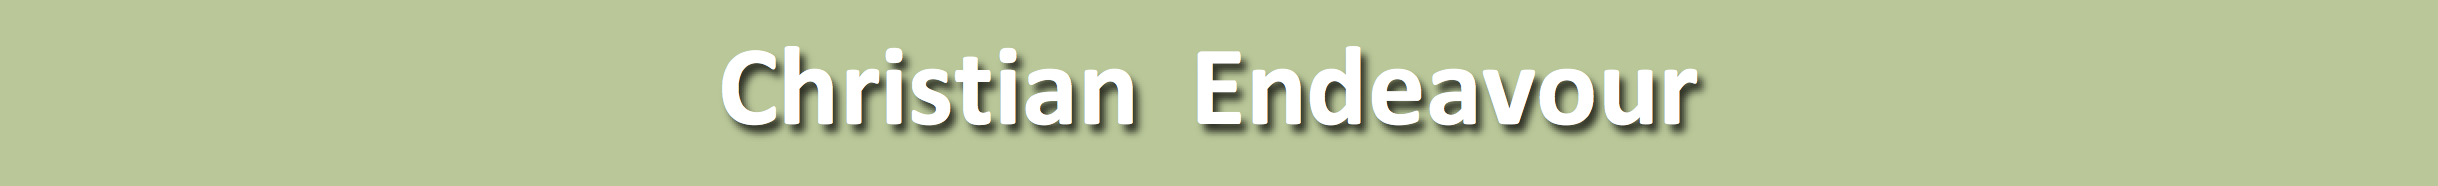 Christian Endeavour banner.png